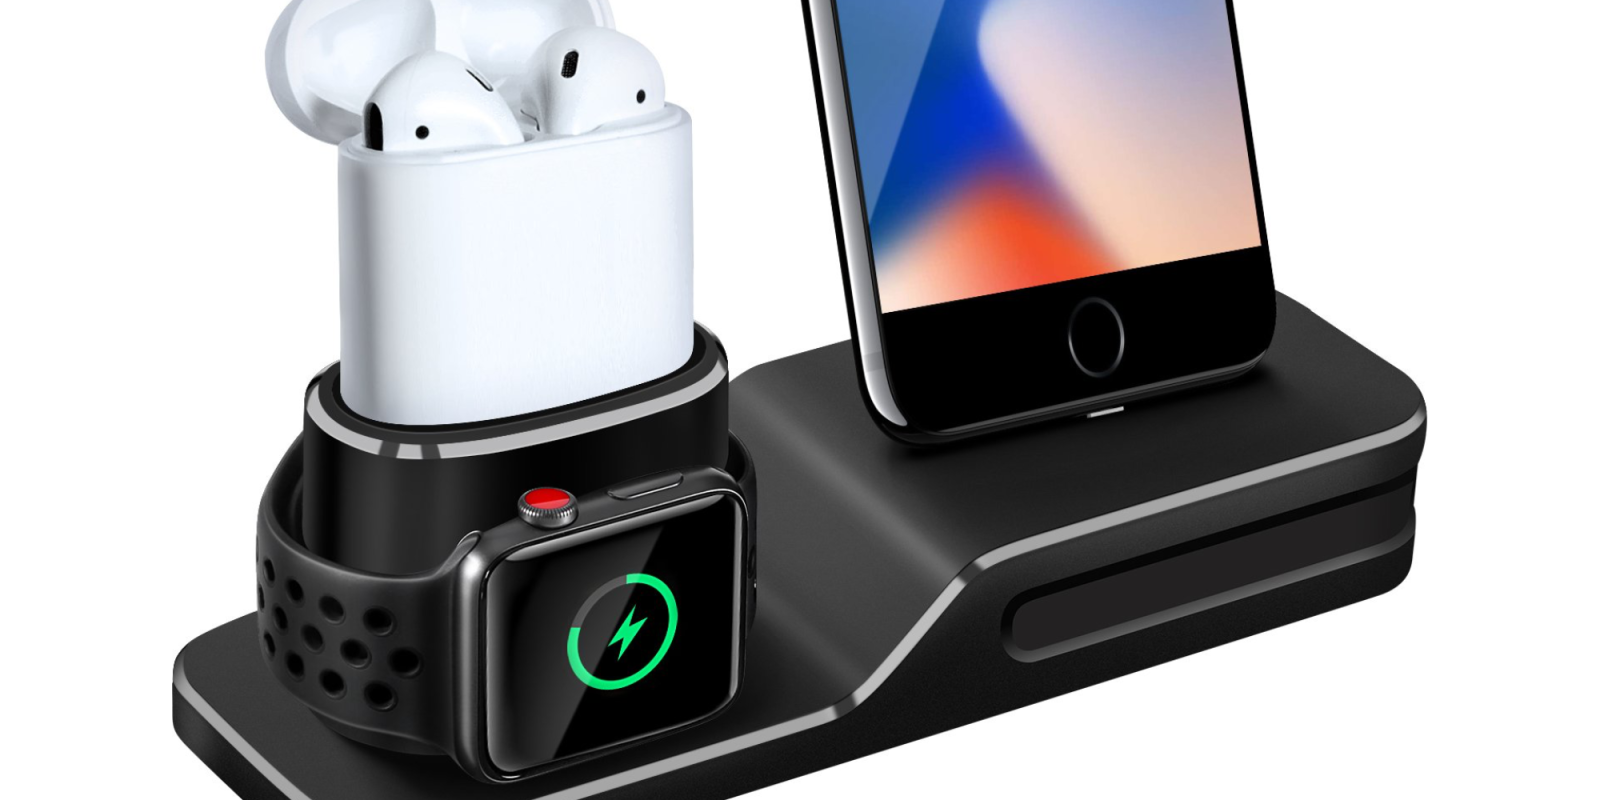 Give your iPhone, Apple Watch and AirPods a home with this 3-in-1 dock at $8 Prime shipped